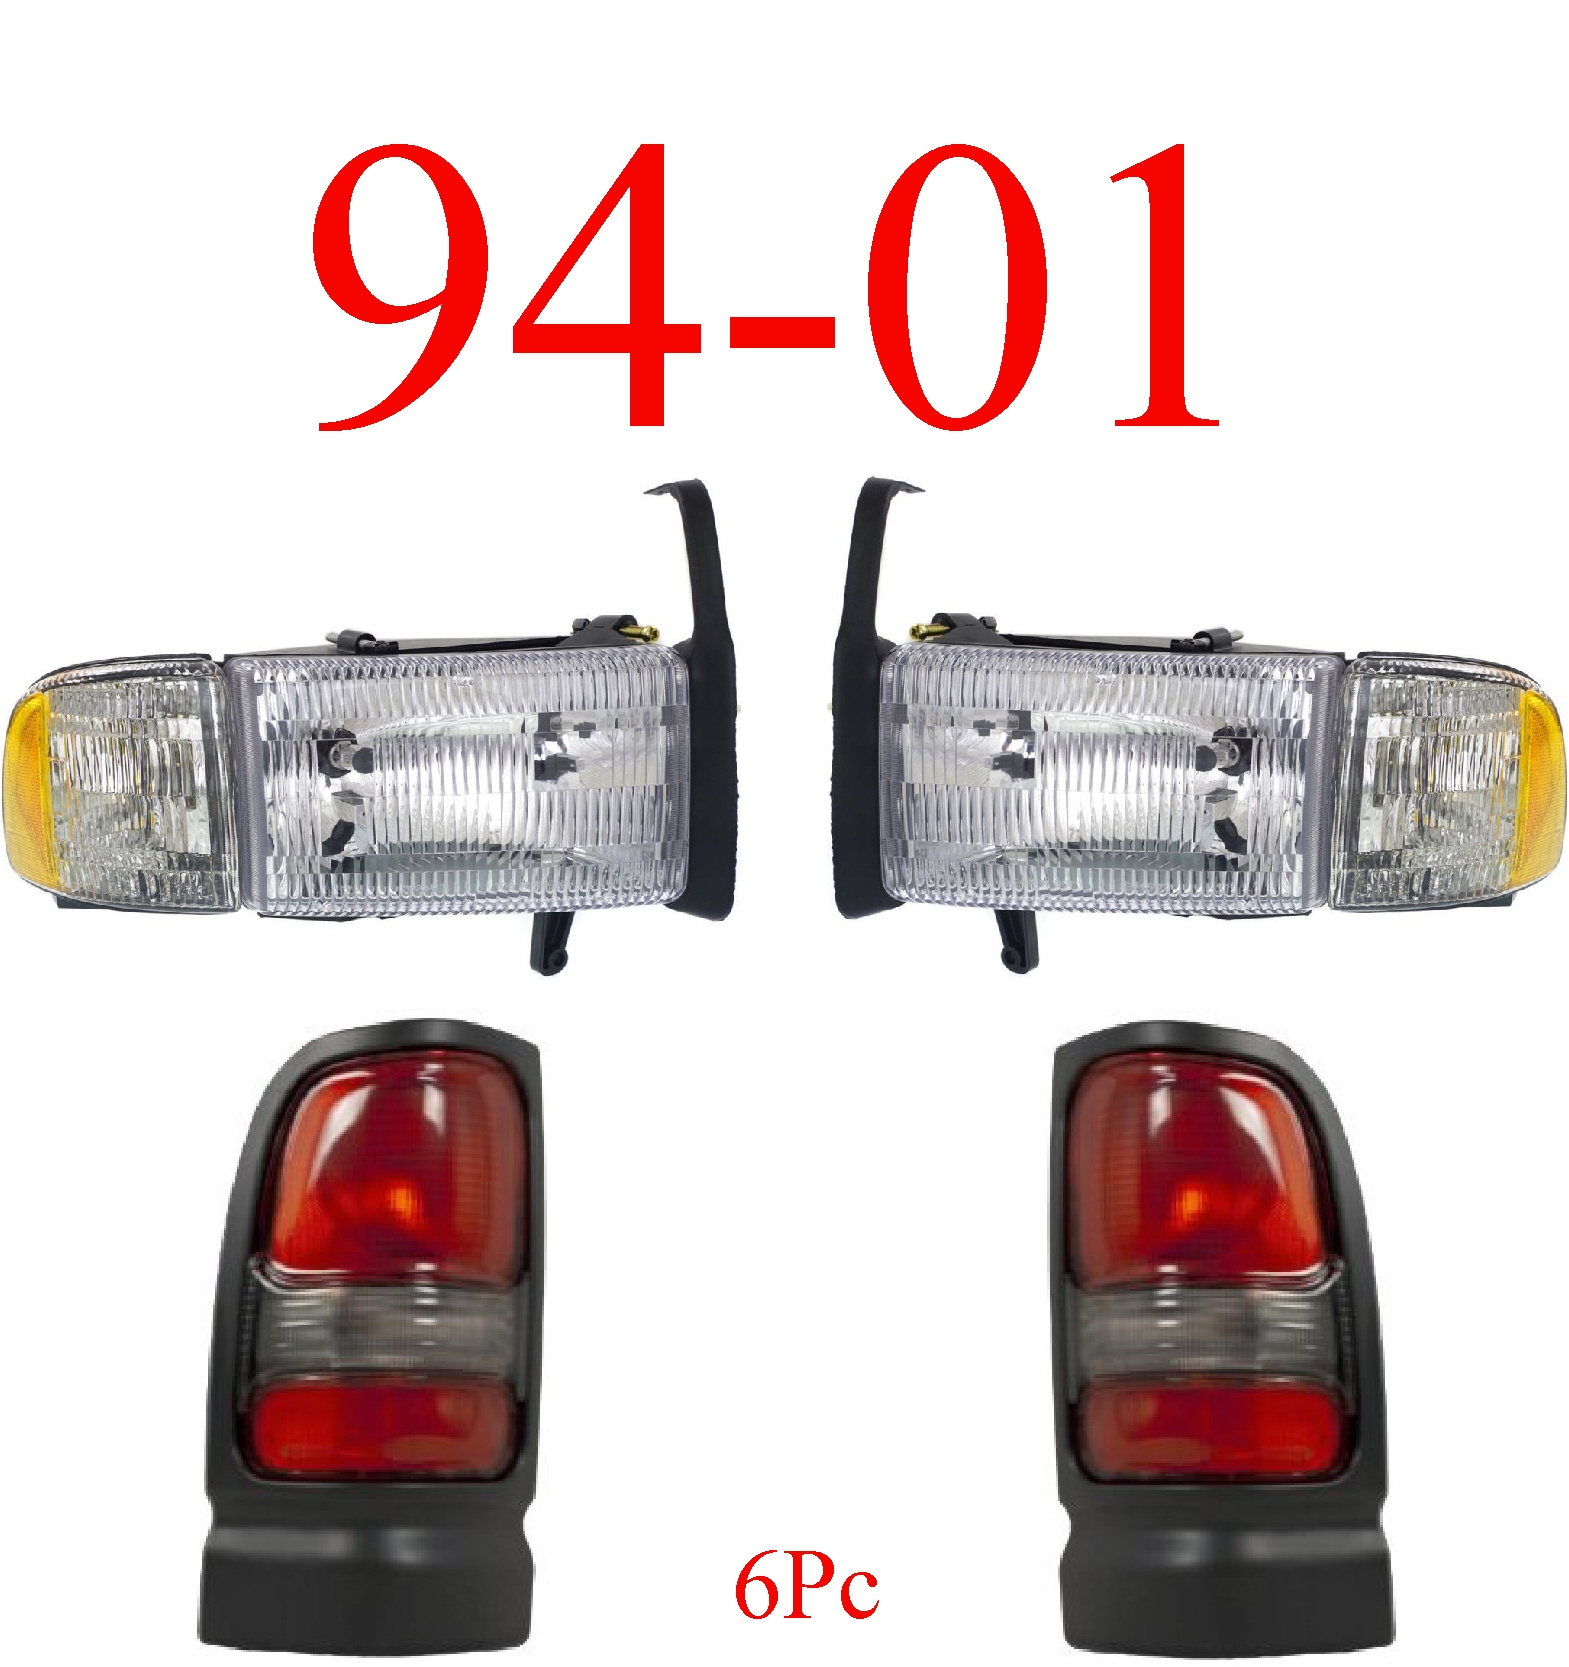 94-01 Dodge Ram 4Pc Head & Tail Light Set